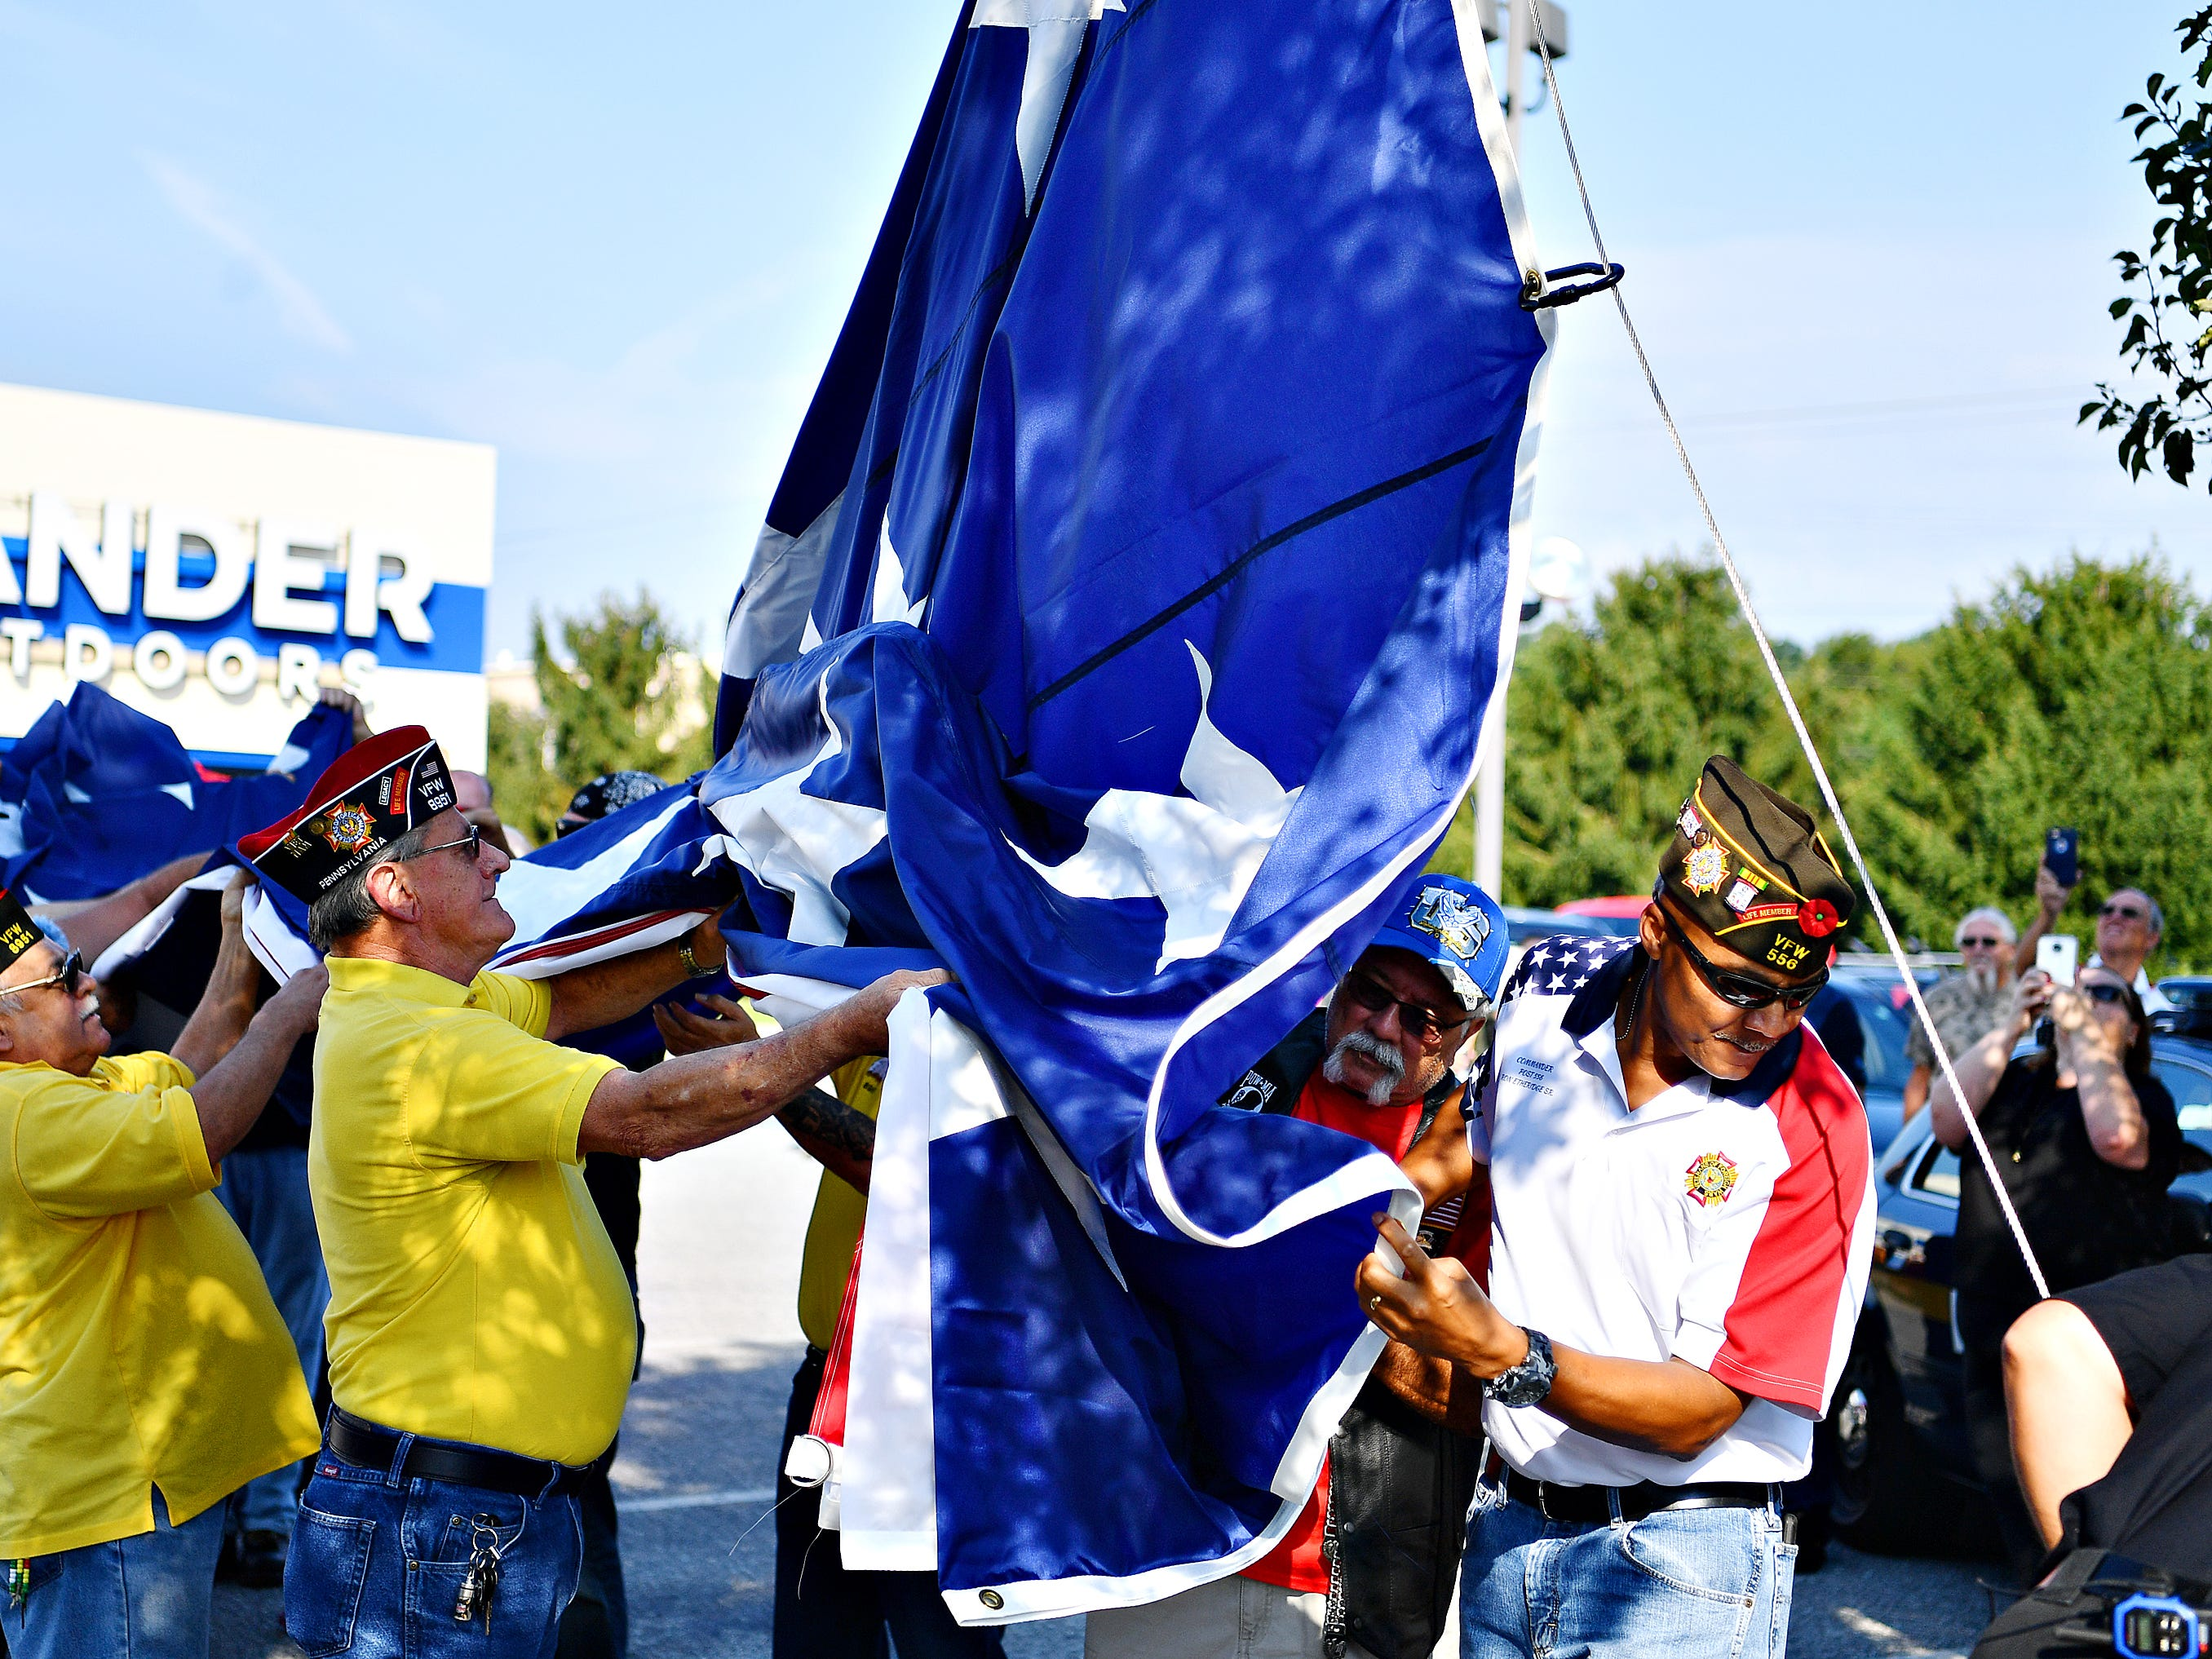 Volunteers hold an 80 by 40 foot flag as it is secured to the pole at Gander Outdoors in West Manchester Township, Friday, Aug. 10, 2018. Dawn J. Sagert